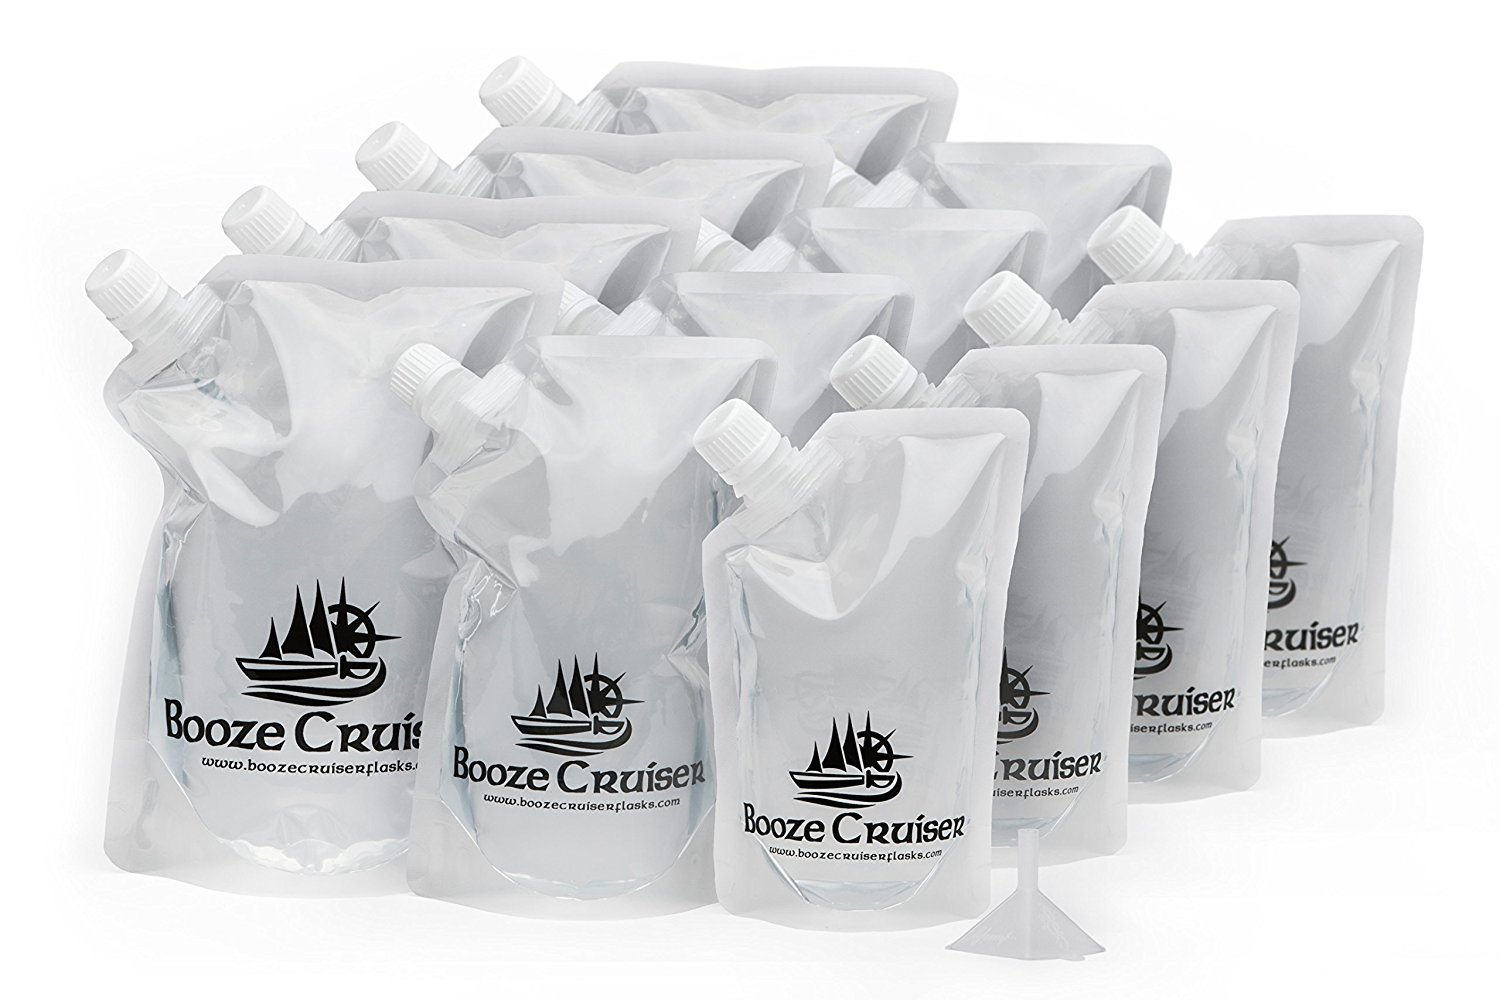 Booze Cruiser Flask Set Perfect For Cruises and Travel or Anywhere You Want a Rum Runner Cocktail Plastic Flask Kit (4x32oz, 4x16oz, 4x8oz + Funnel)